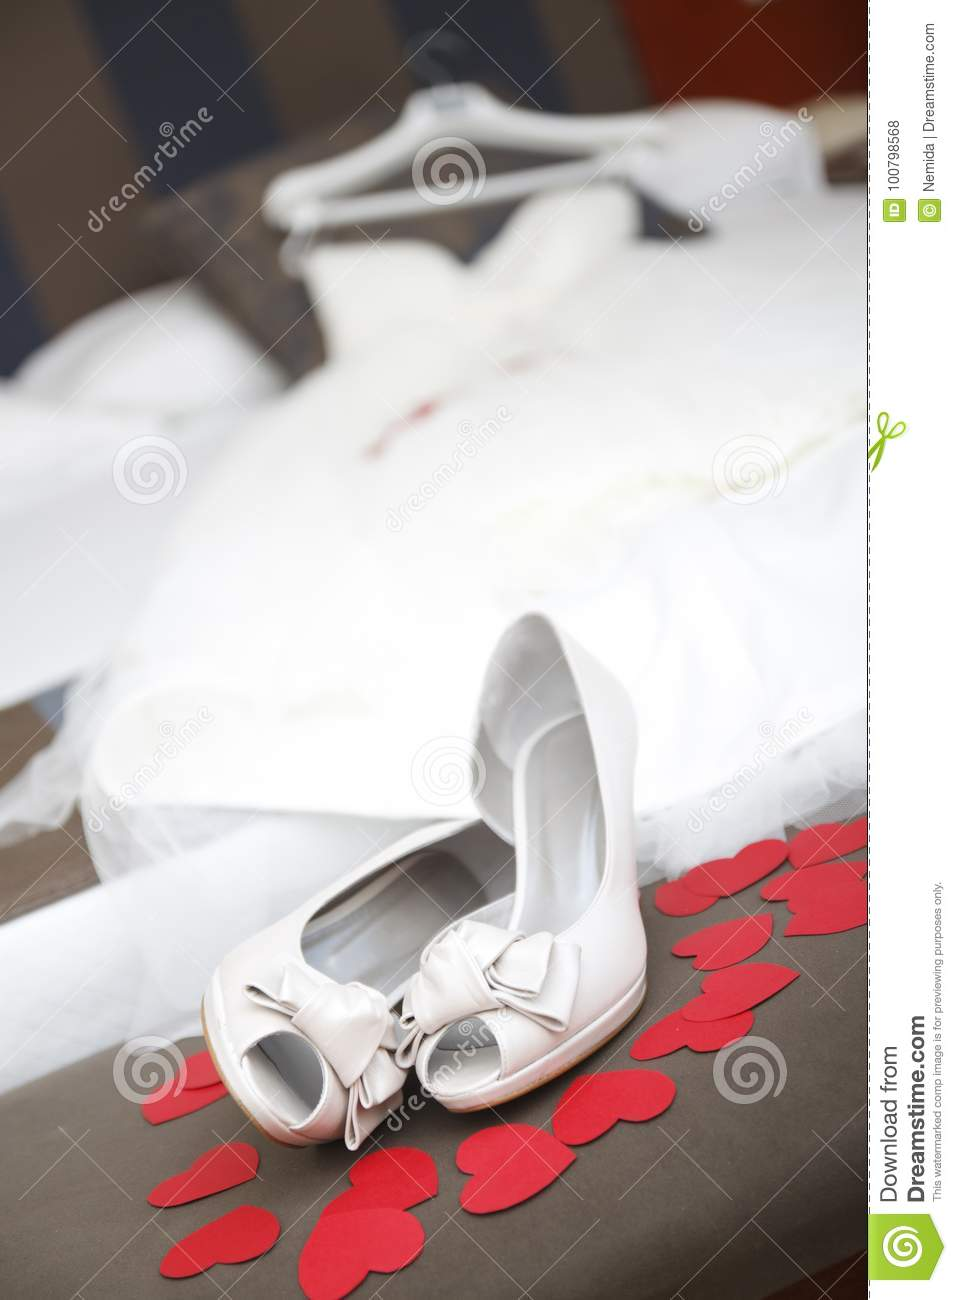 993ed538f7d4d A wedding shoes and a dress waiting on the bed.